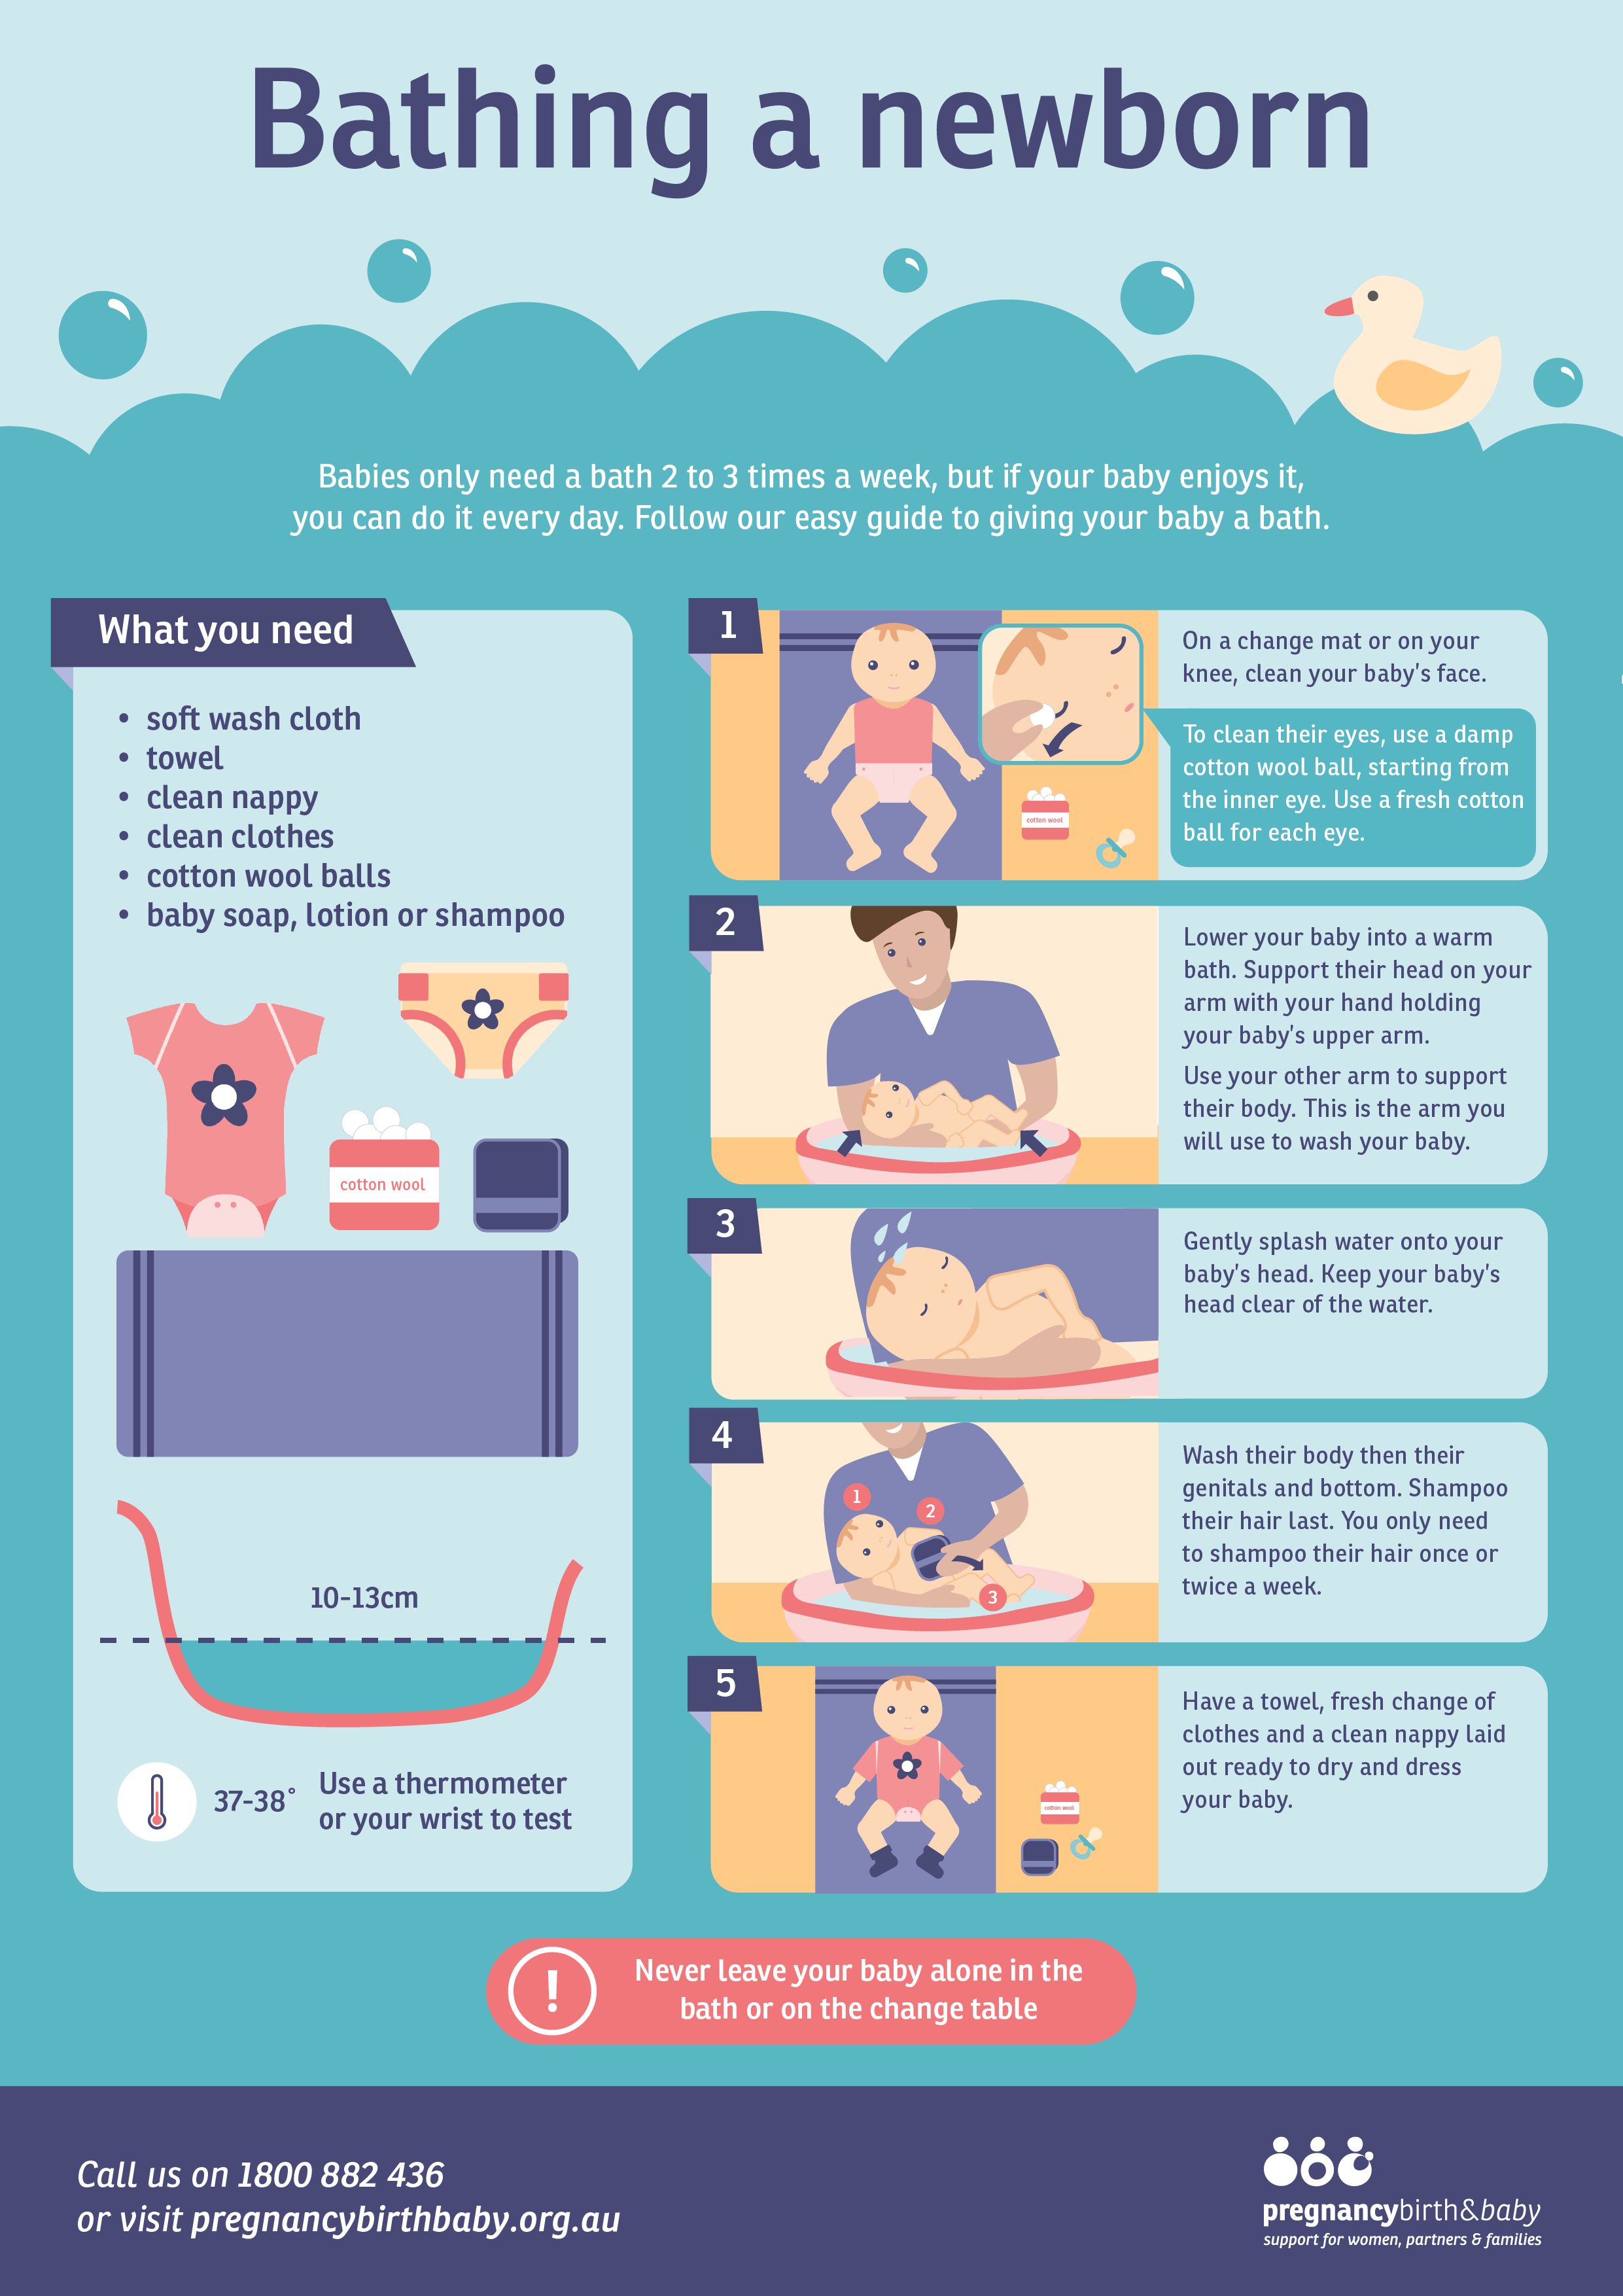 Bathing your baby - infographic